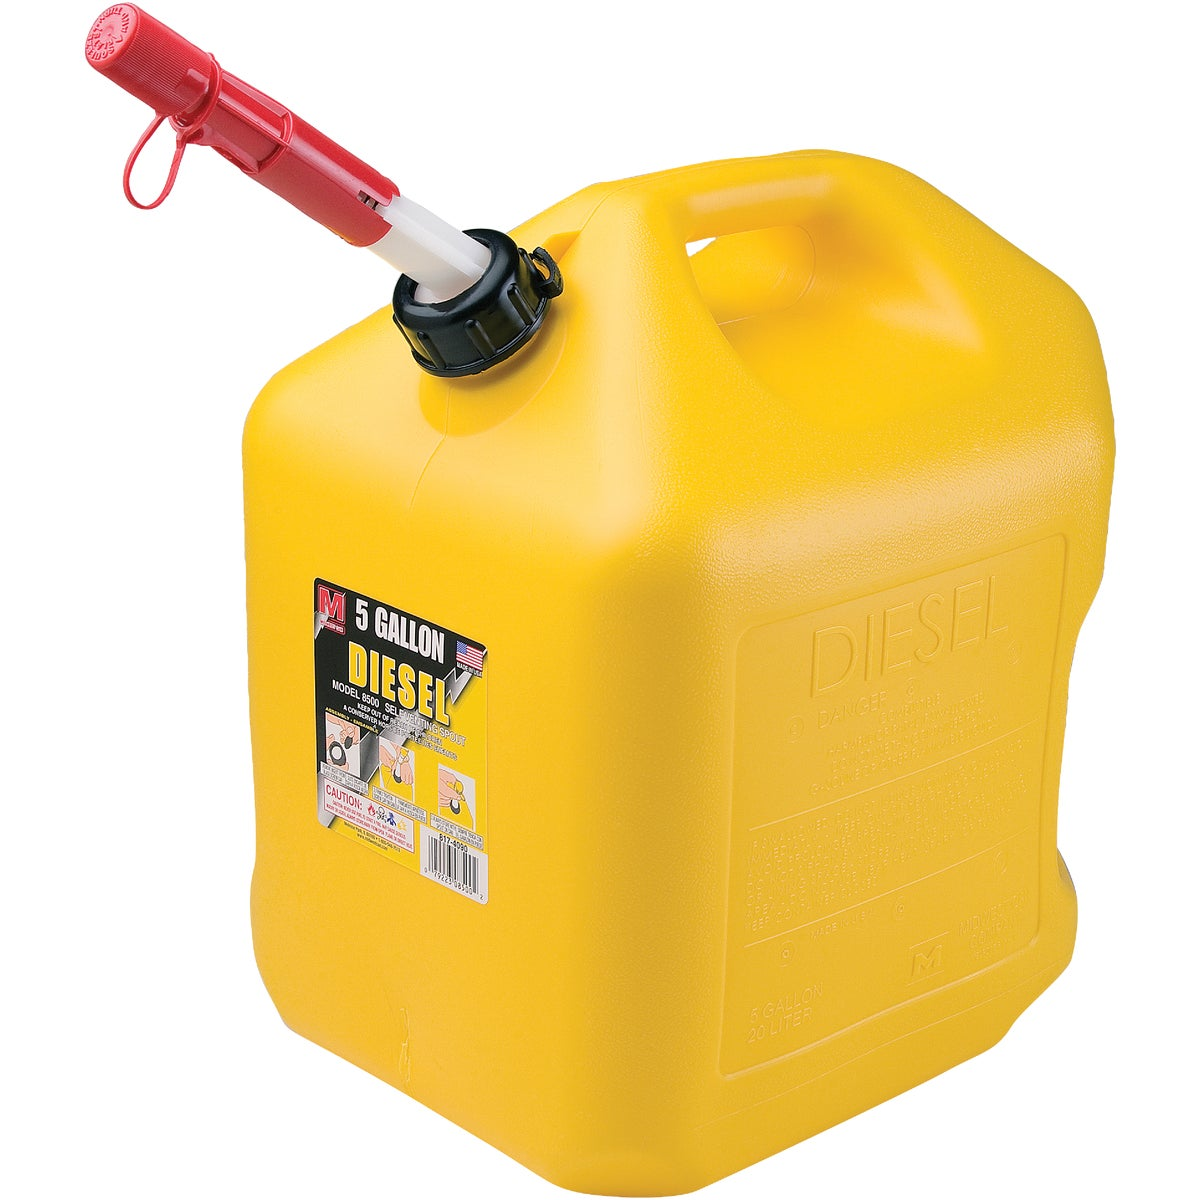 5 GALLON DIESEL CAN - 8600 by Midwest Can